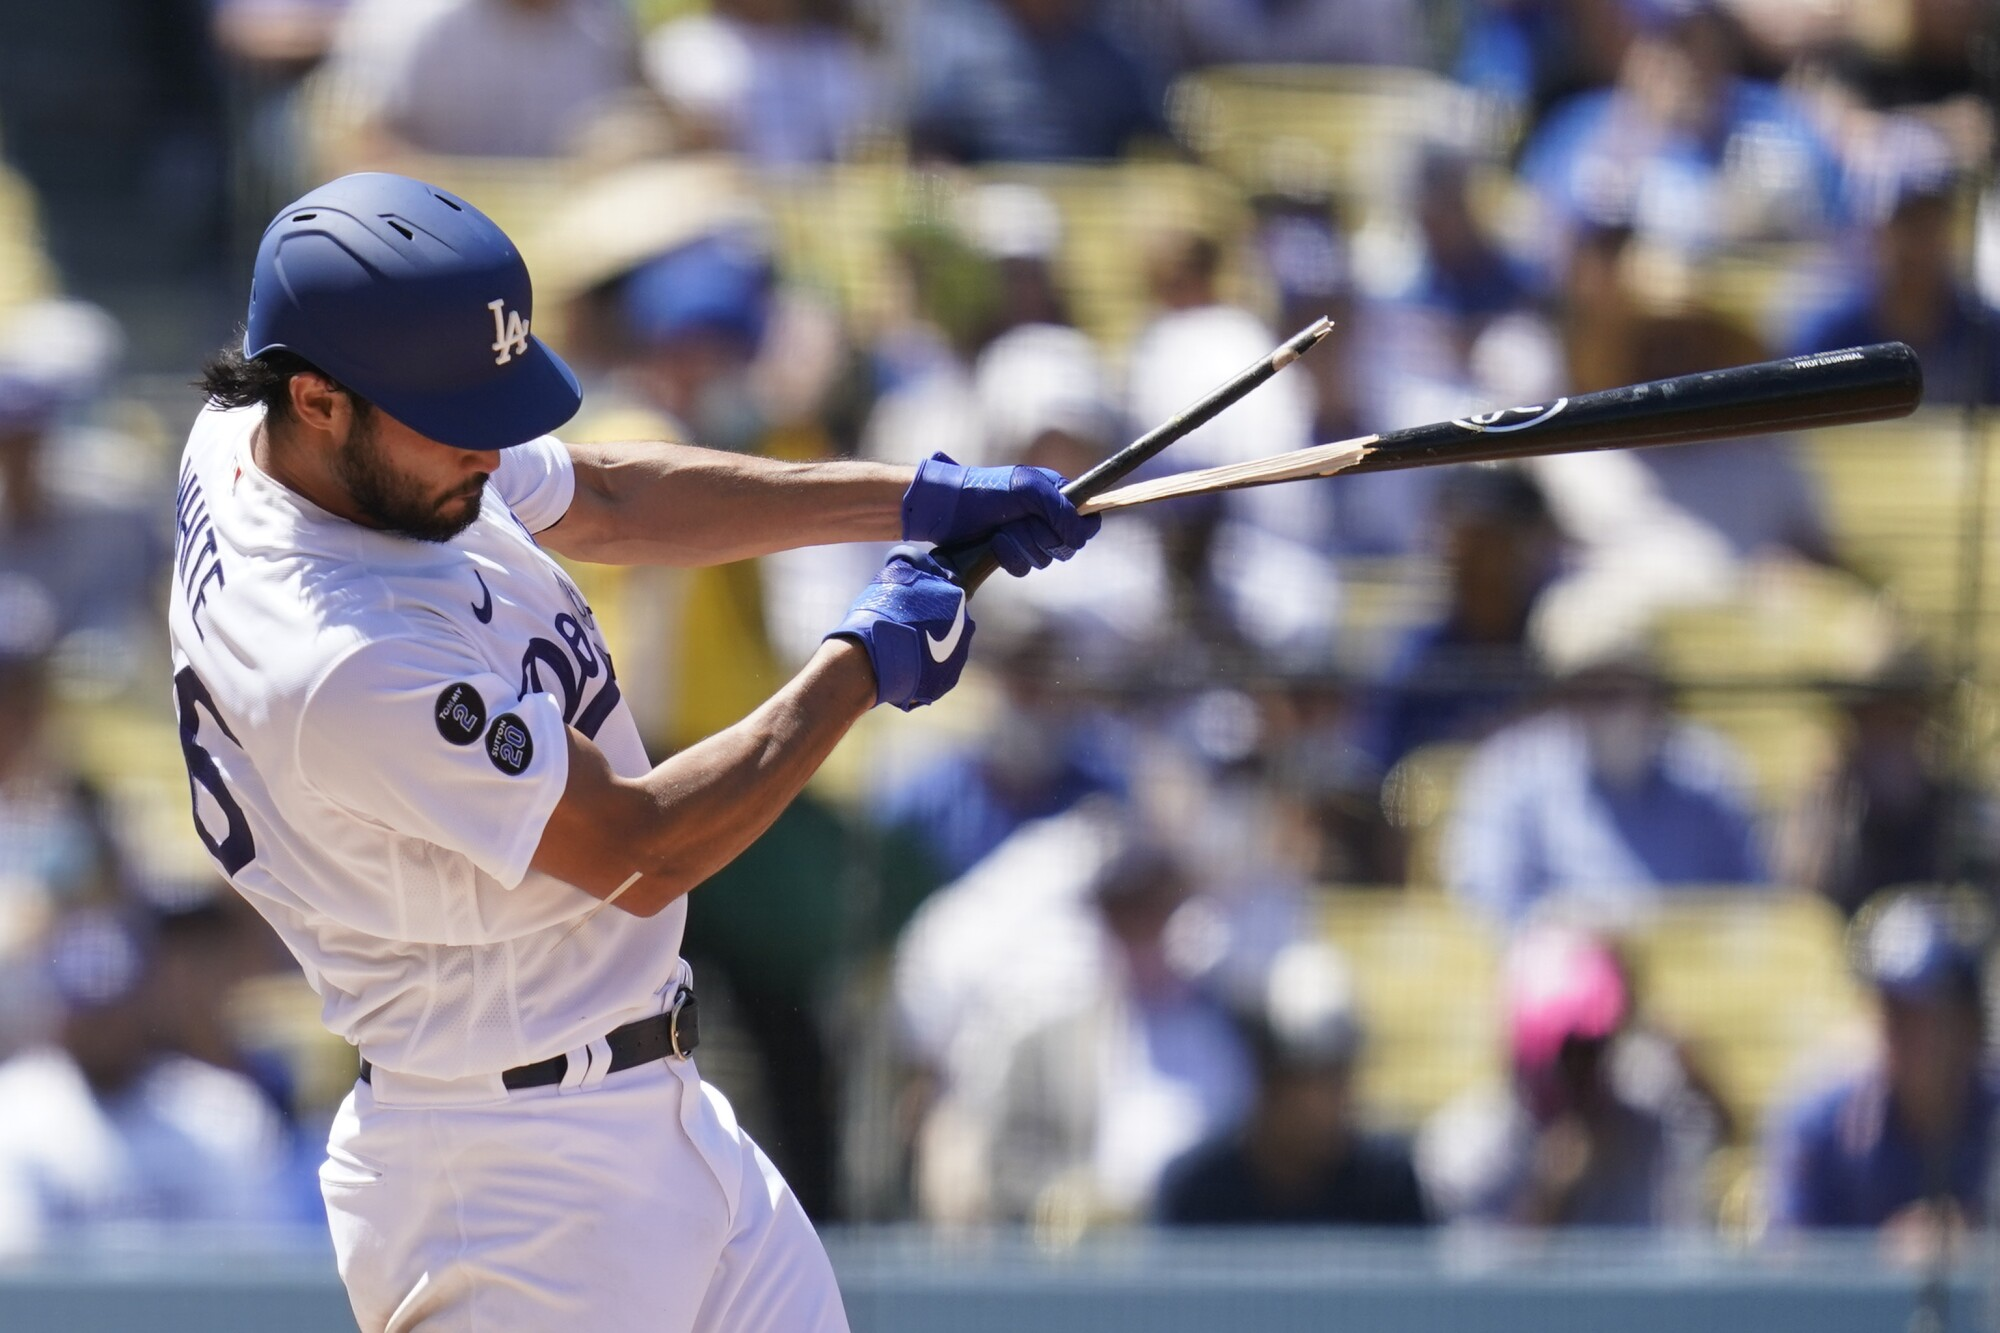 Los Angeles Dodgers' Mitch White breaks a bat as he grounds out during the third inning.